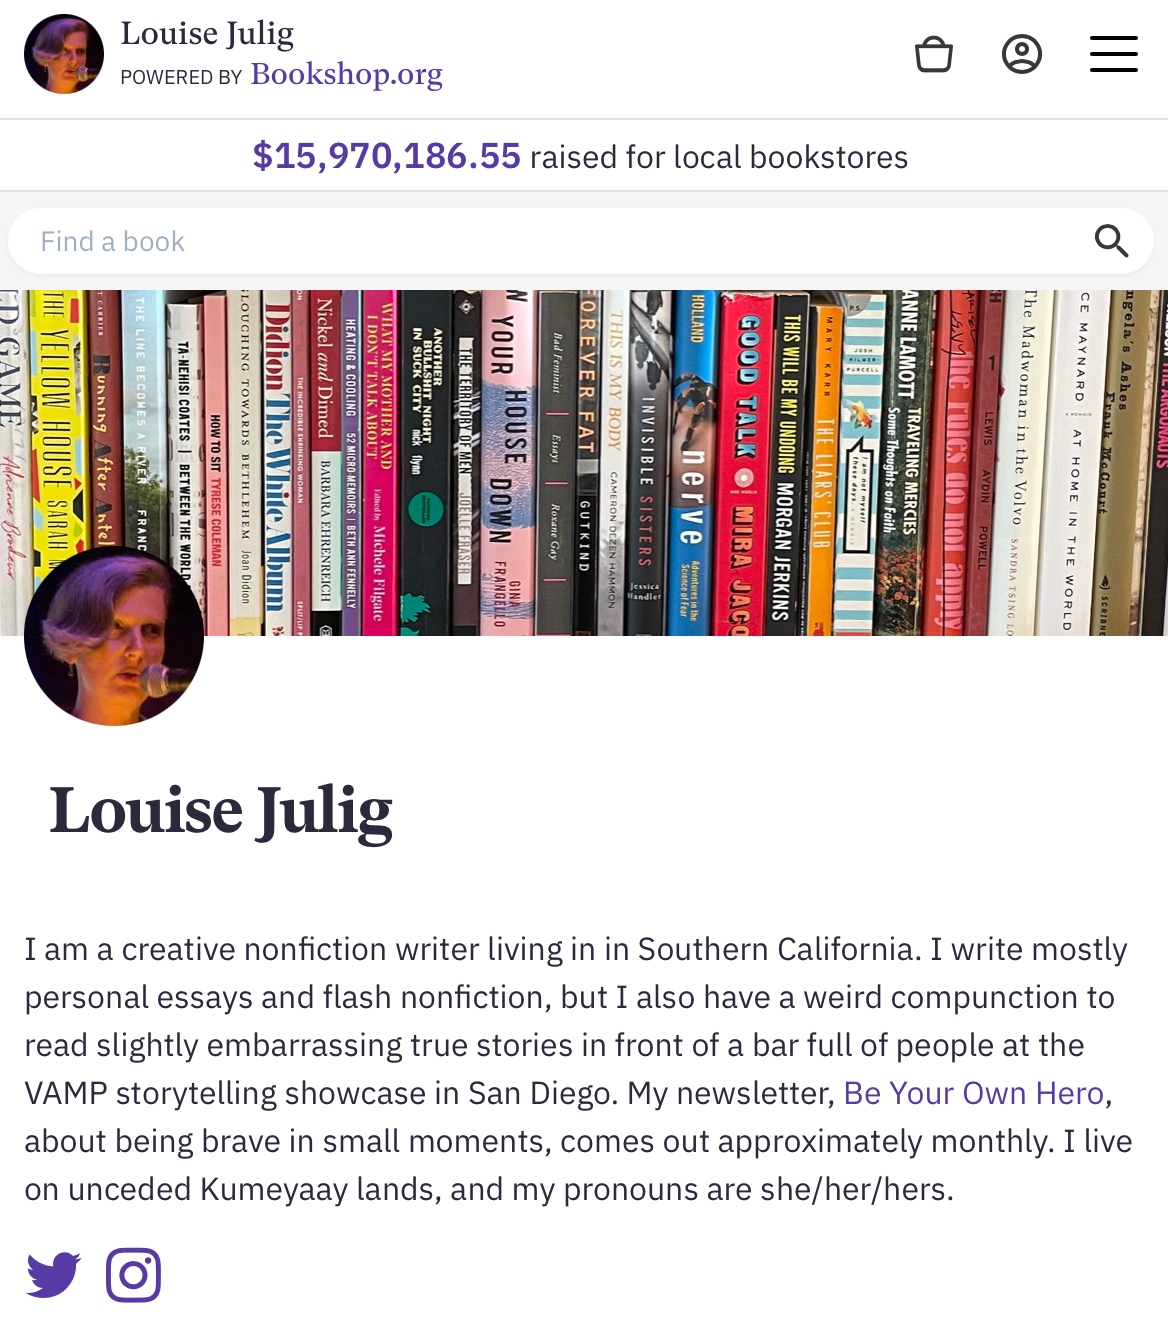 Screen shot of the Bookshop.org site with Louise Julig's storefront. the banner image is a shelf full of memoirs. The shop icon is a circle with a close-up of Louise, a middle-aged woman with an asymmetrical blonde haircut, in front of a microphone